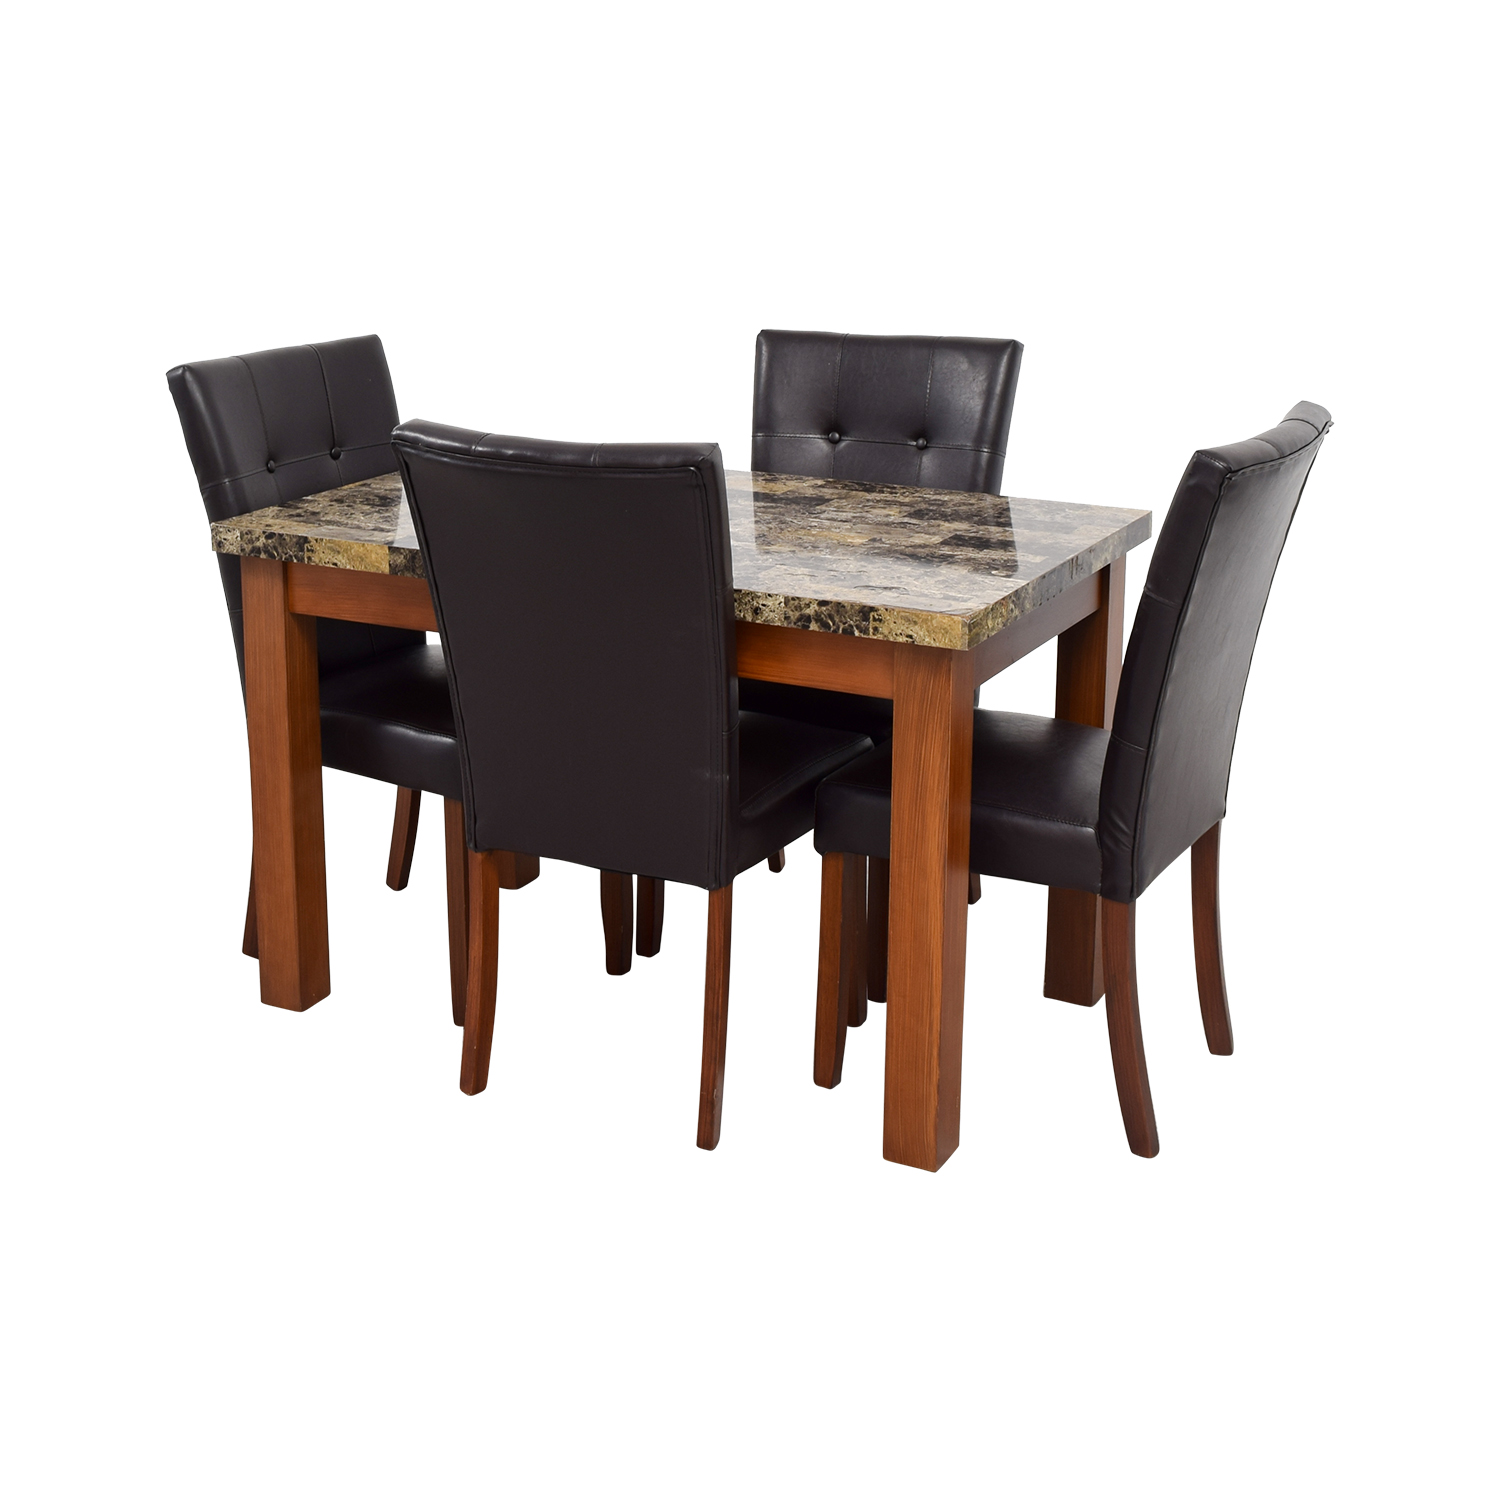 OFF Faux Marble Dining Table With Brown Tufted Leather Chairs - Used marble dining table